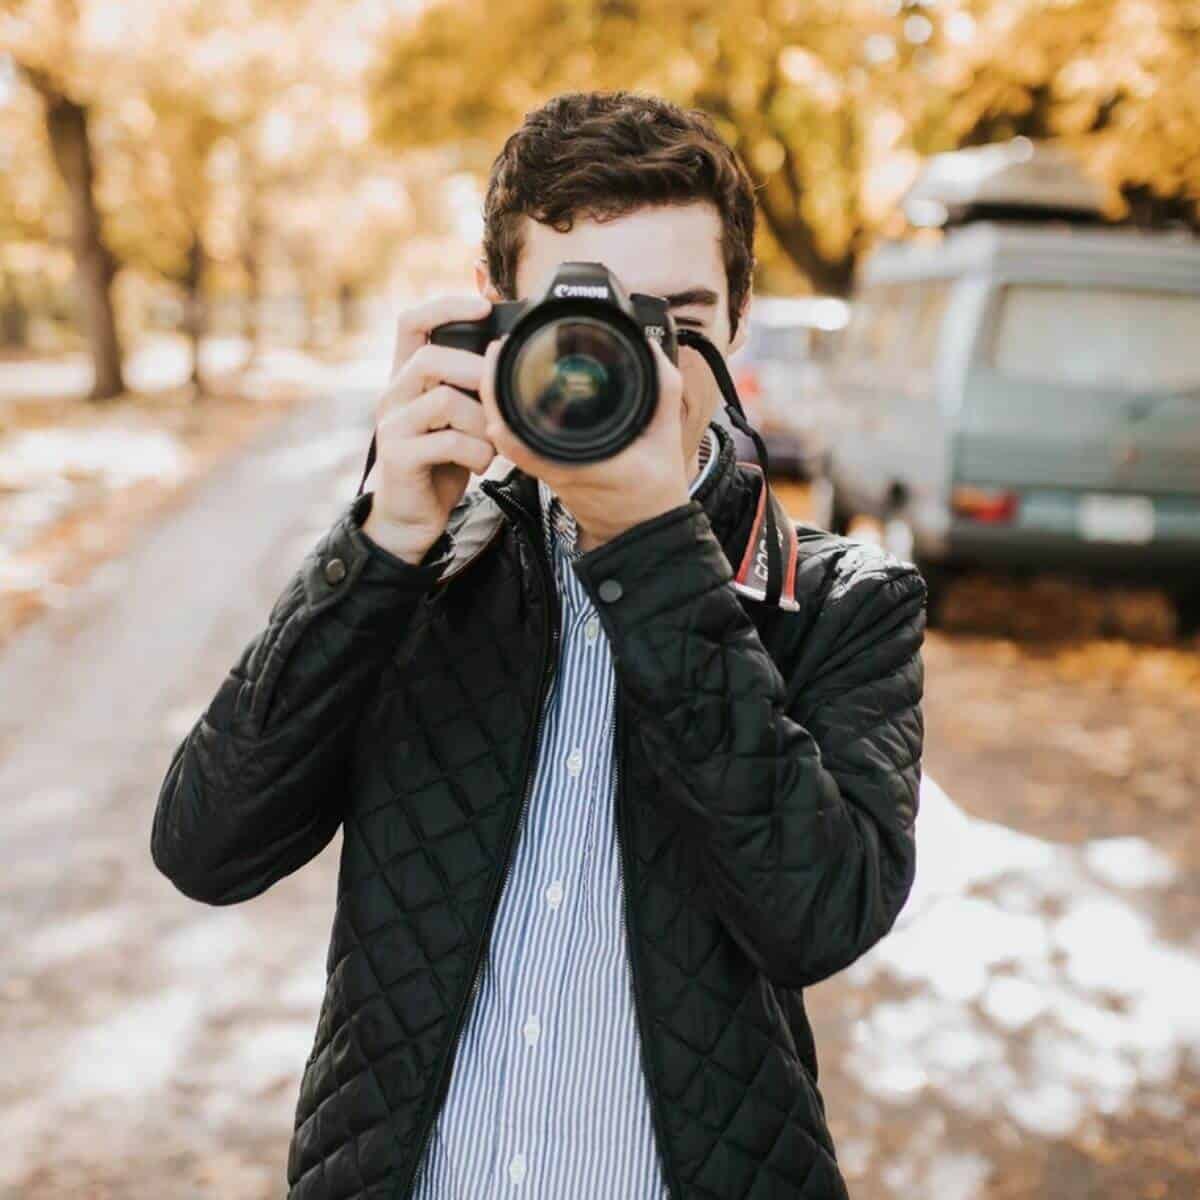 Photographer taking a photo outdoors during autumn.